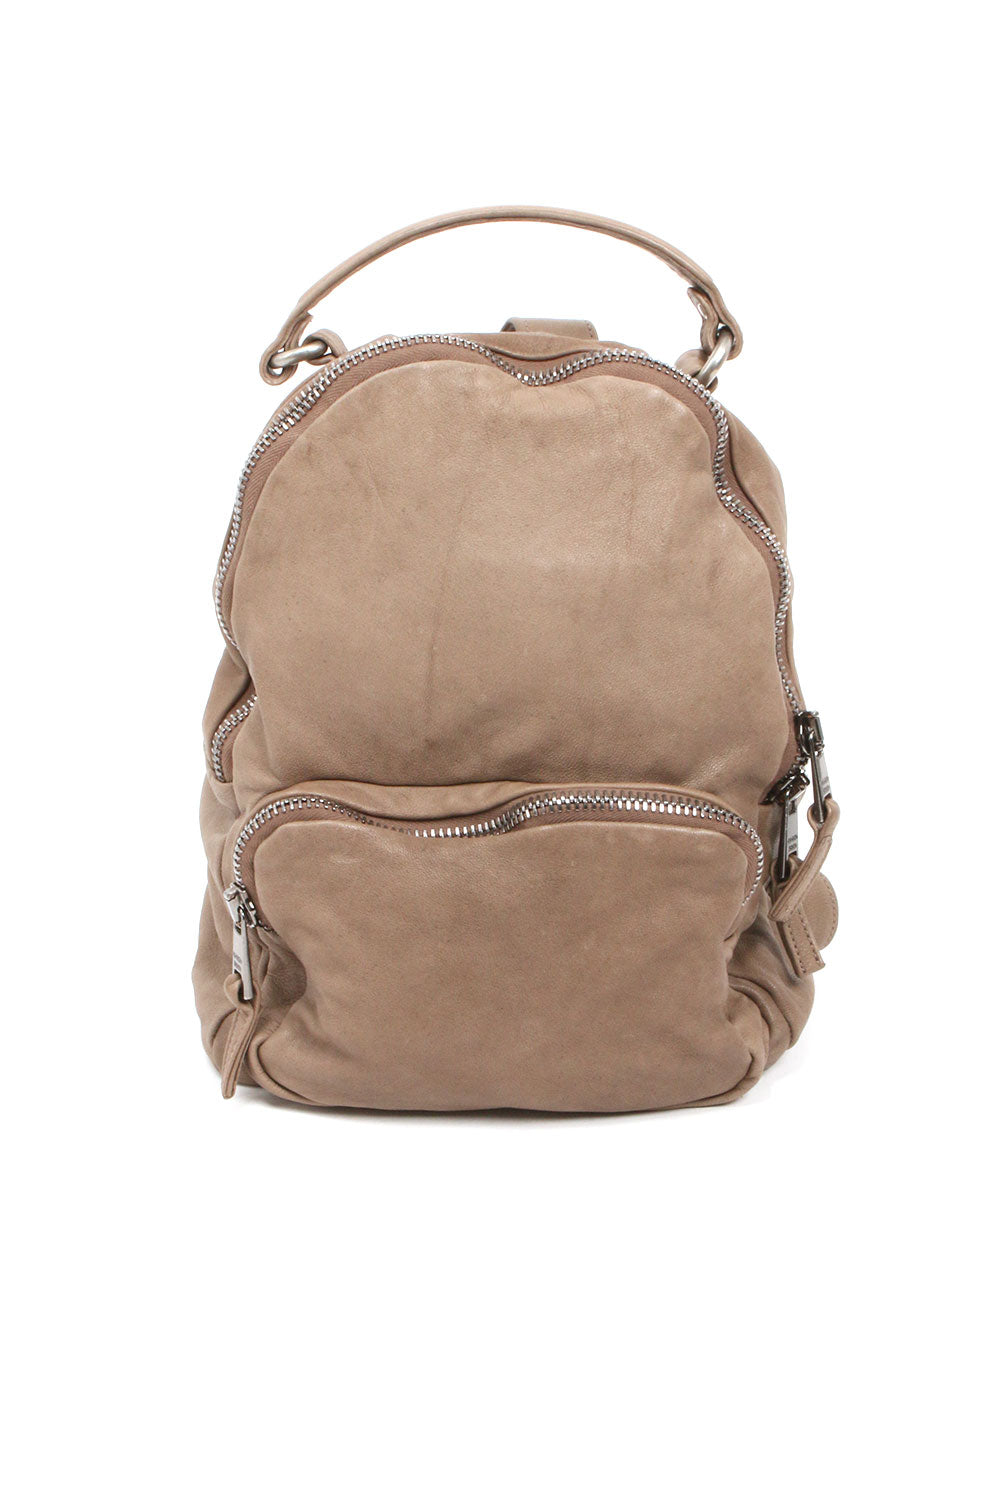 Leather Backpack in Taupe Color from Giorgio Brato